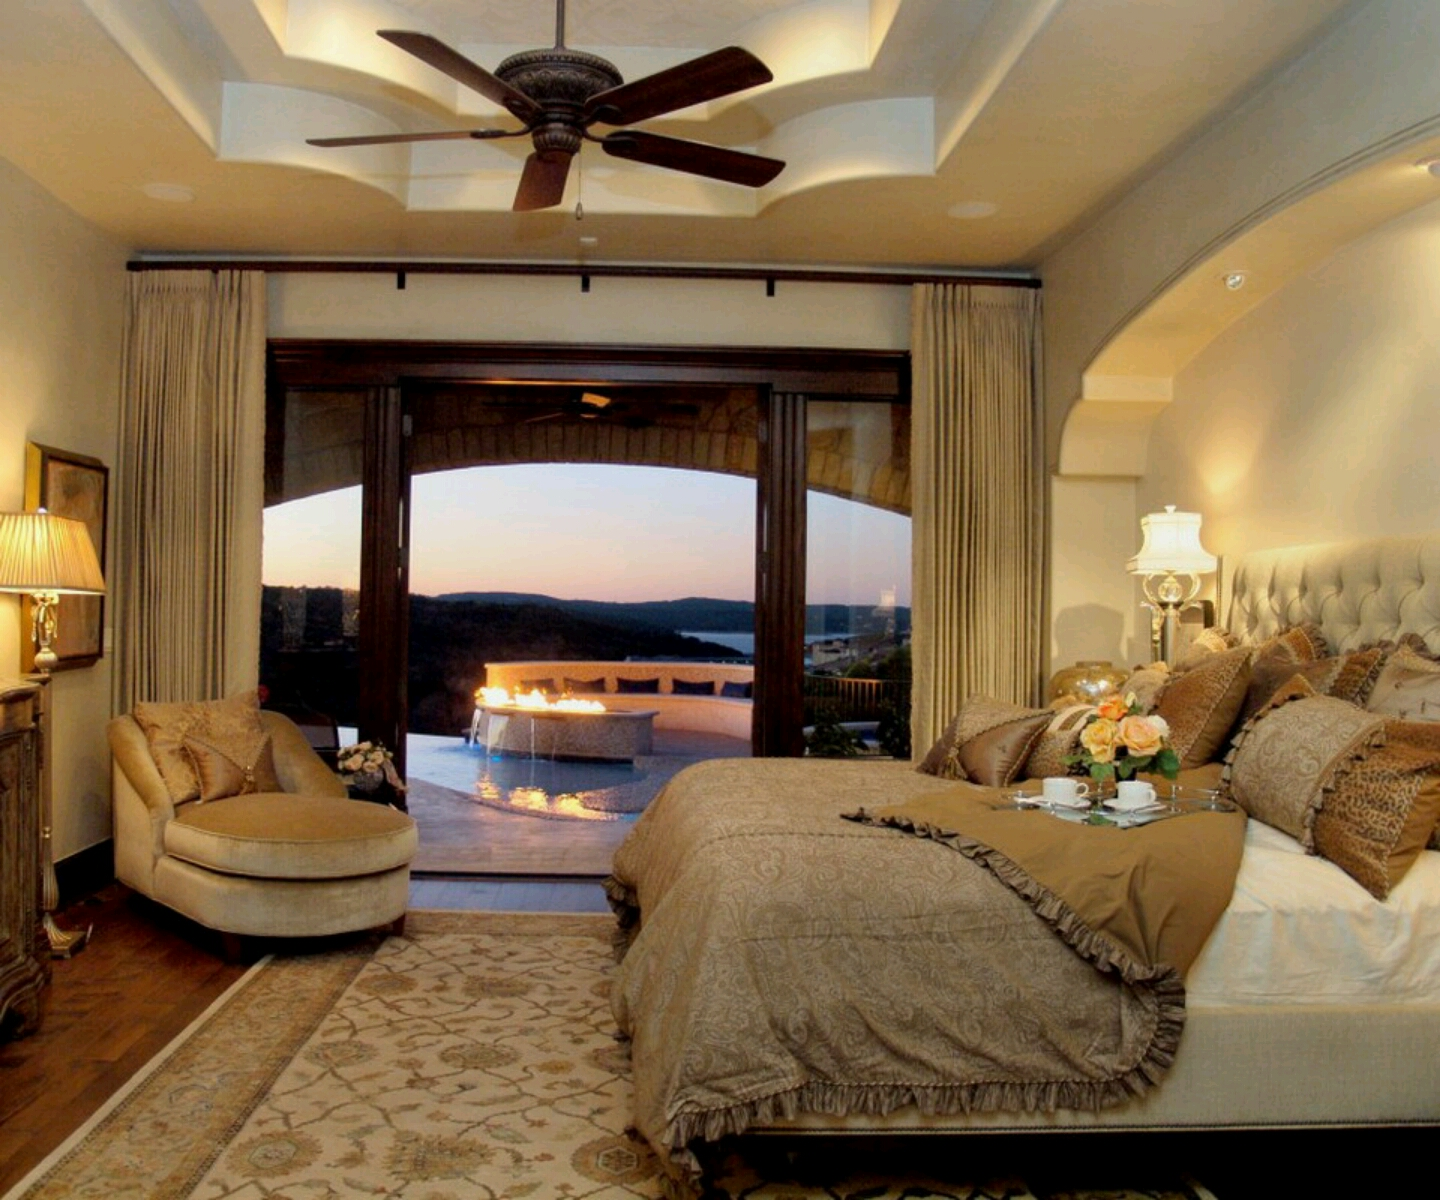 Ceiling Design For Small Room New Home Designs Latest Modern Bedrooms Designs Ceiling